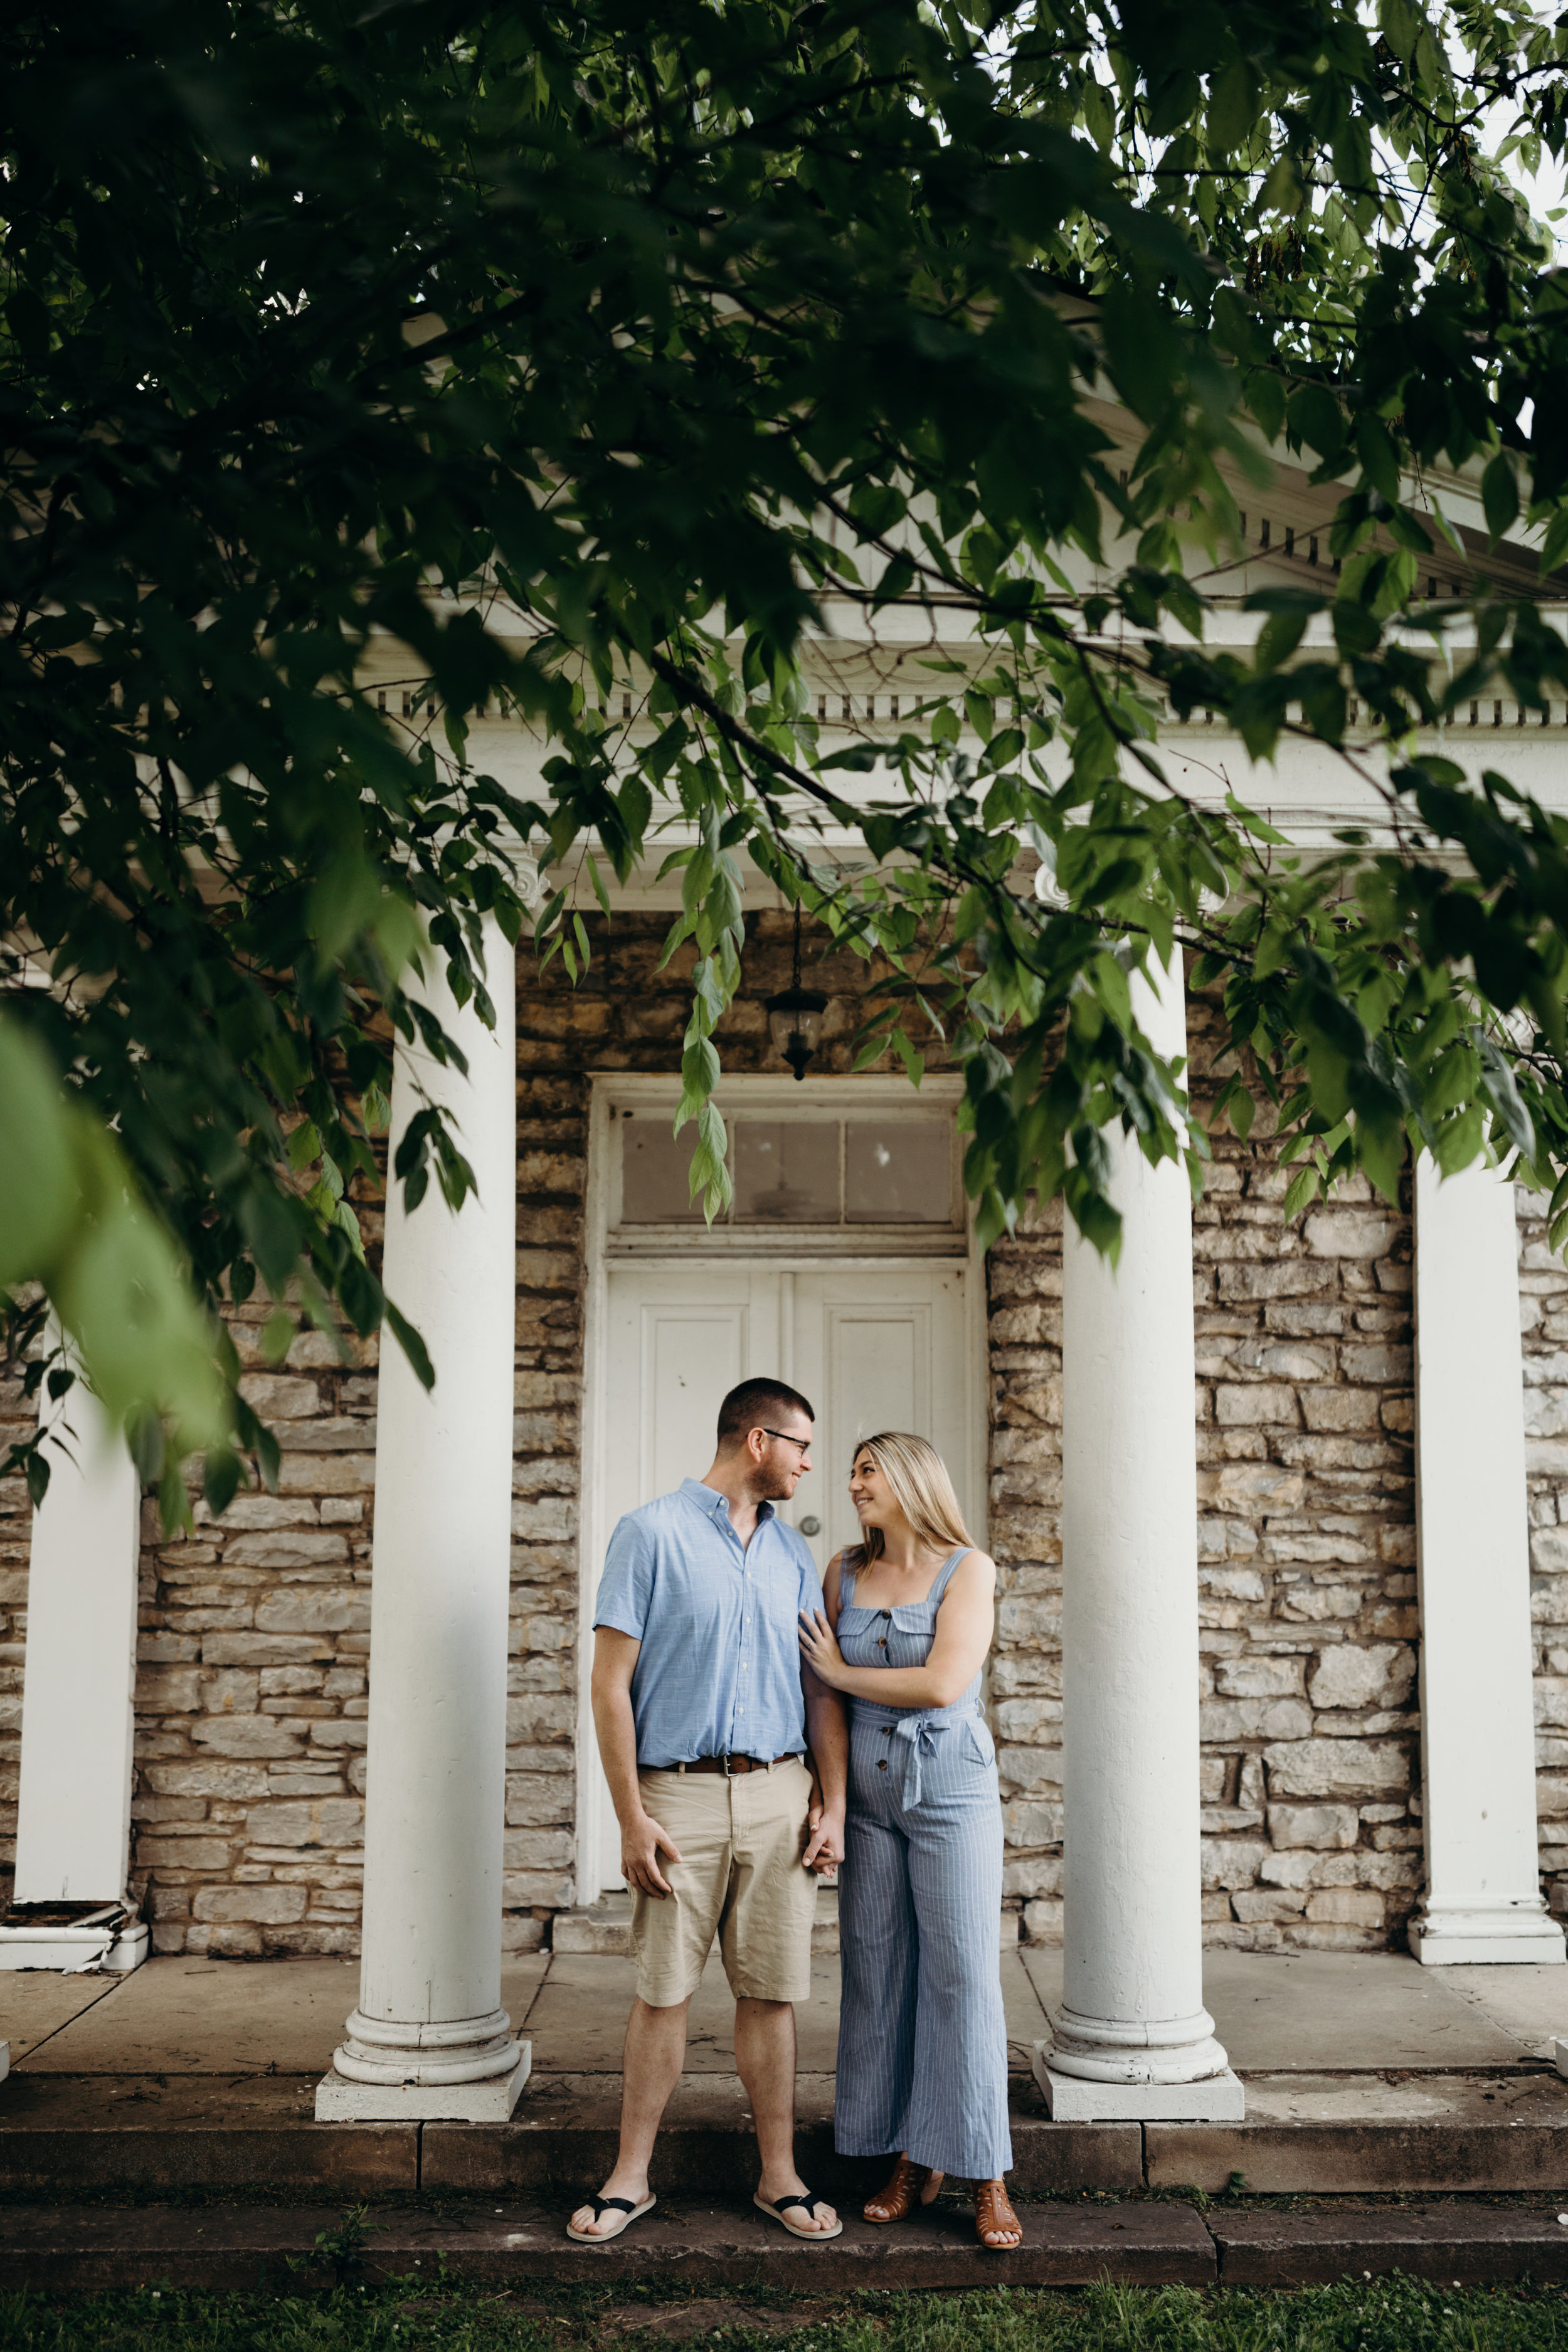 Outdoorsy engagement session at Sevier Park by 12th South in Nashville, Tennessee